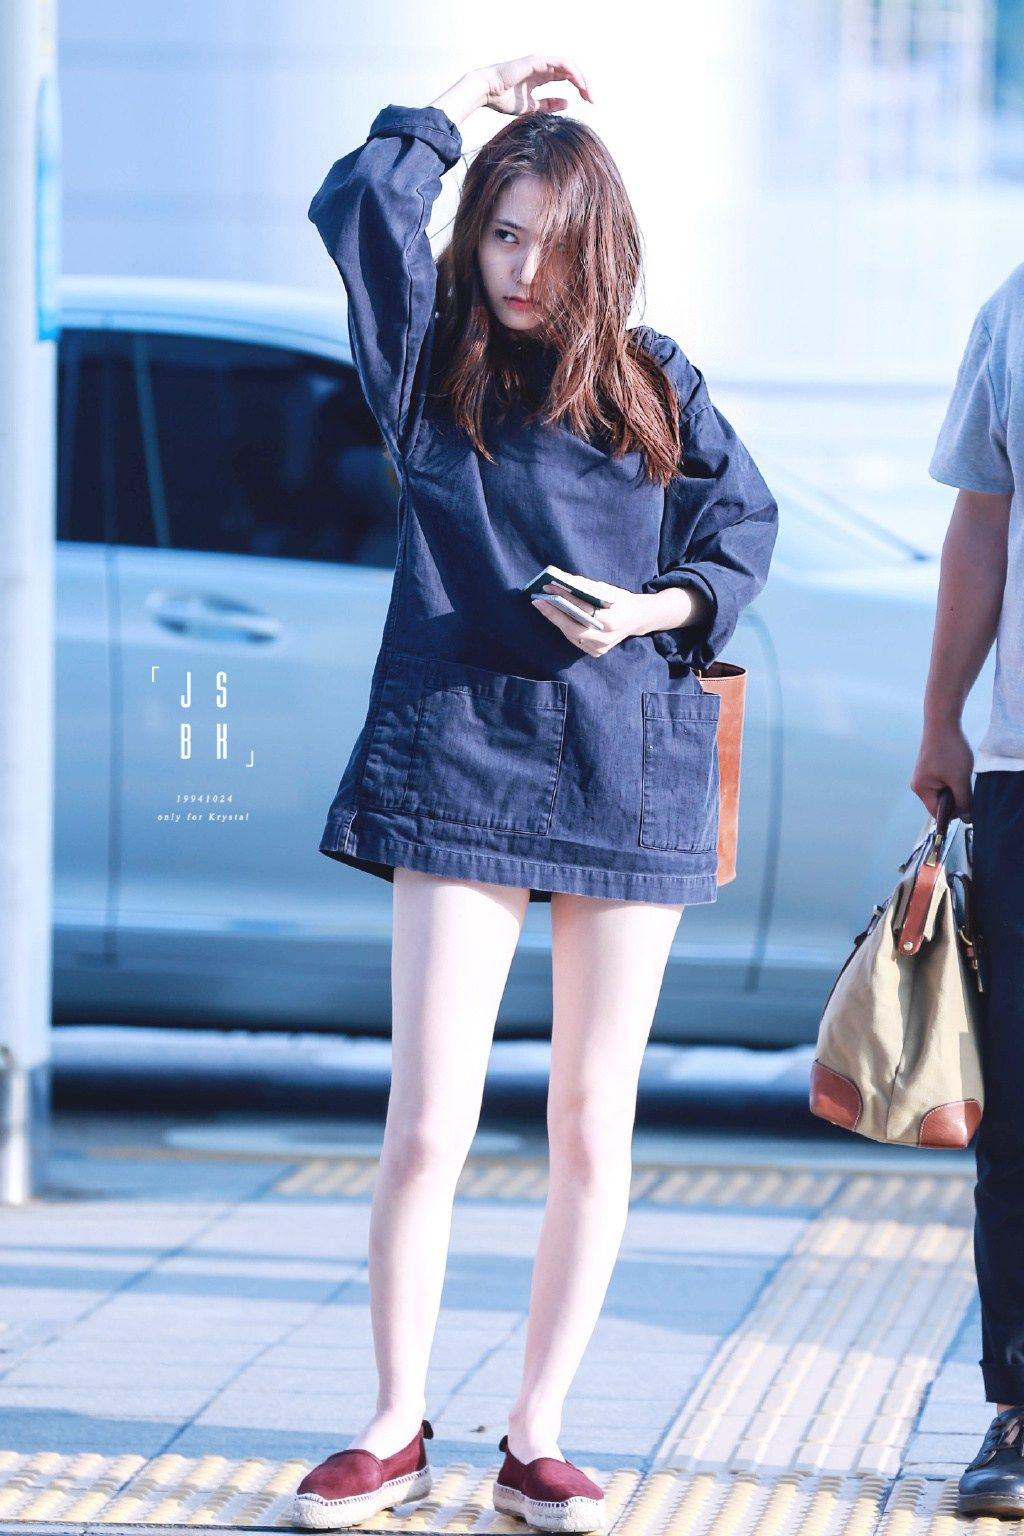 160703 f(Krystal) = Incheon Airport (Going Back to China) [3] | 9P – f(♥)